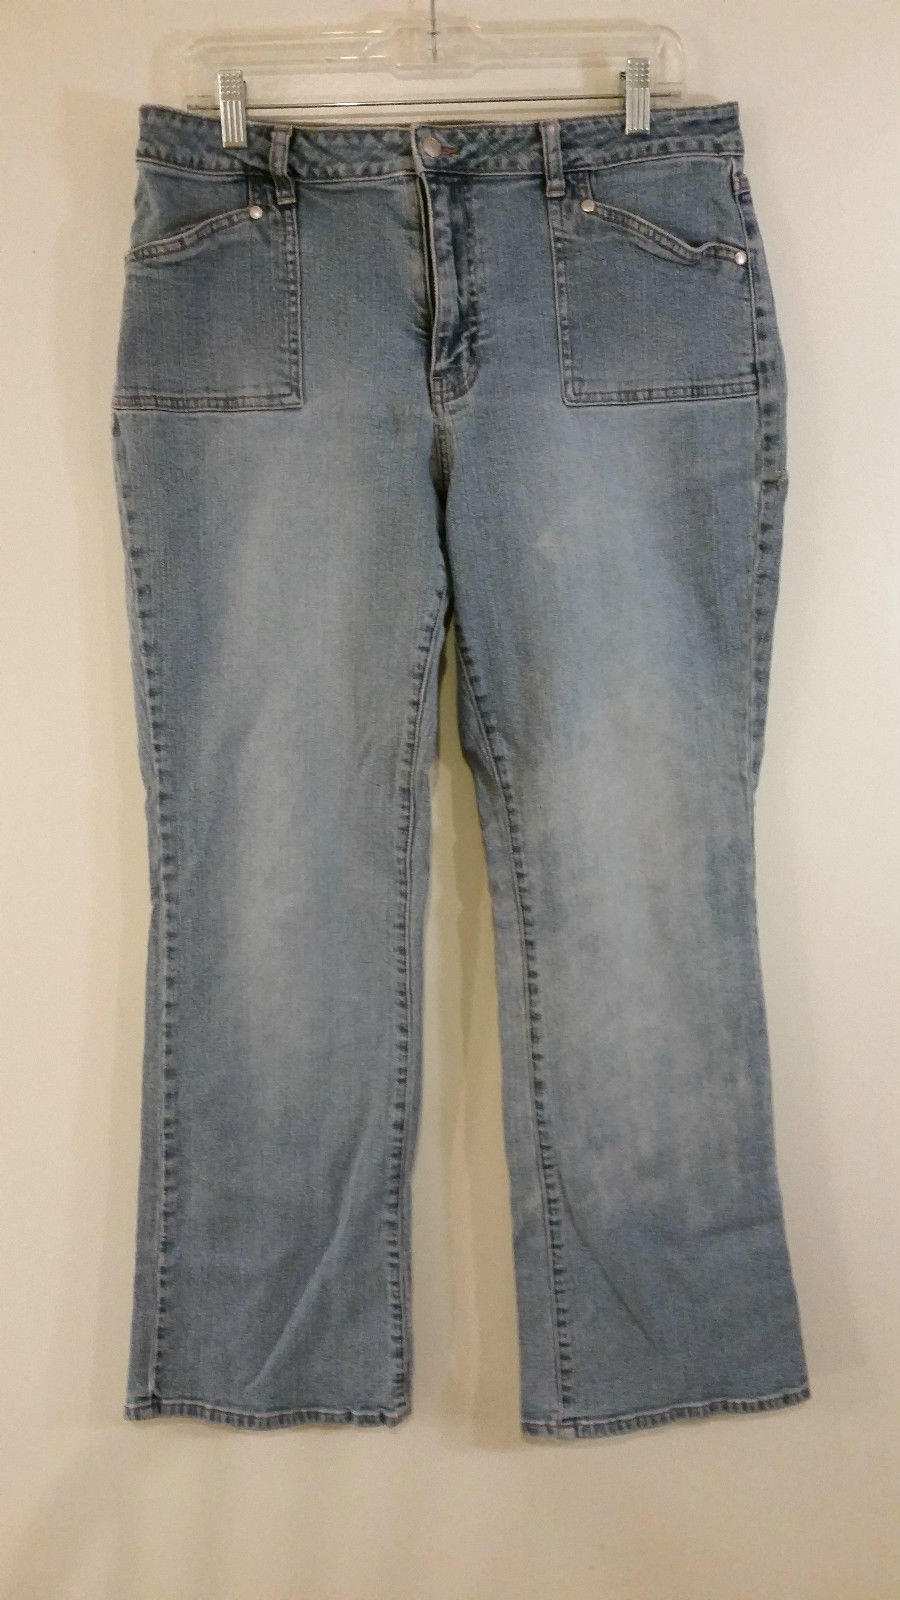 L A Blues Stretch Blue Jeans Size 16 Front and Back Pockets Straight Legs